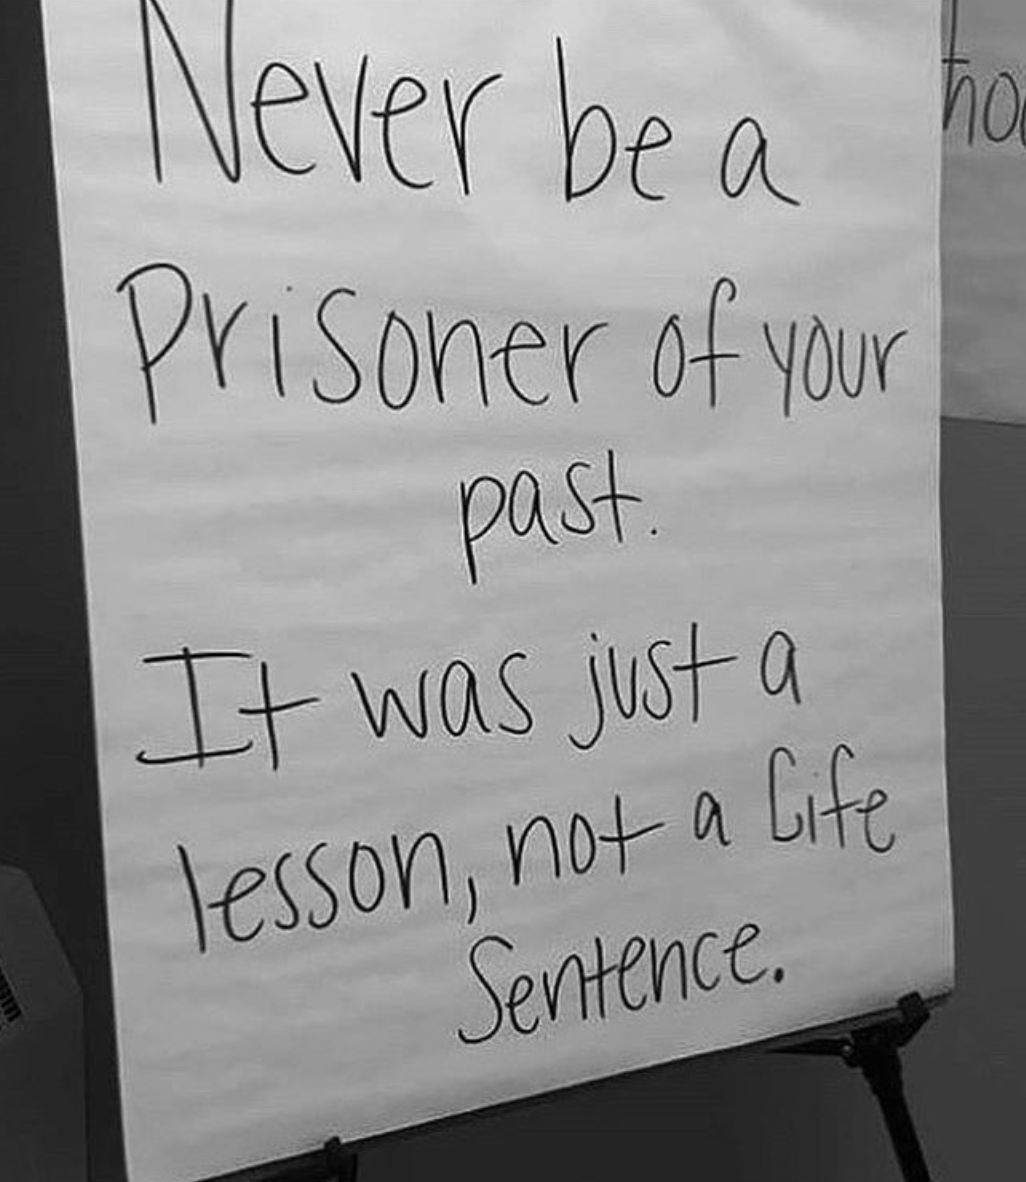 [Image] Never be a prisoner of your past. It was just a lesson, not a life sentence